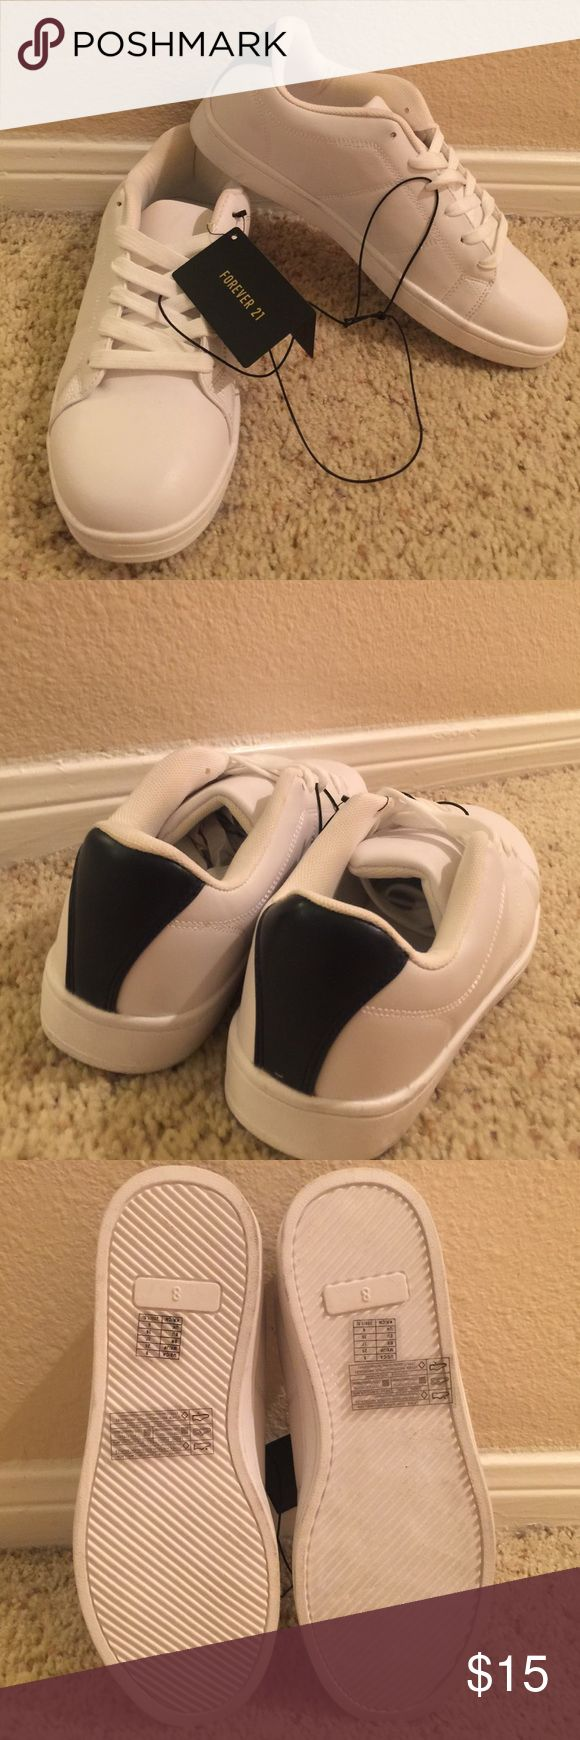 NEW White sneakers with navy strip in back NEW White sneakers with navy strip in back Forever 21 Shoes Sneakers